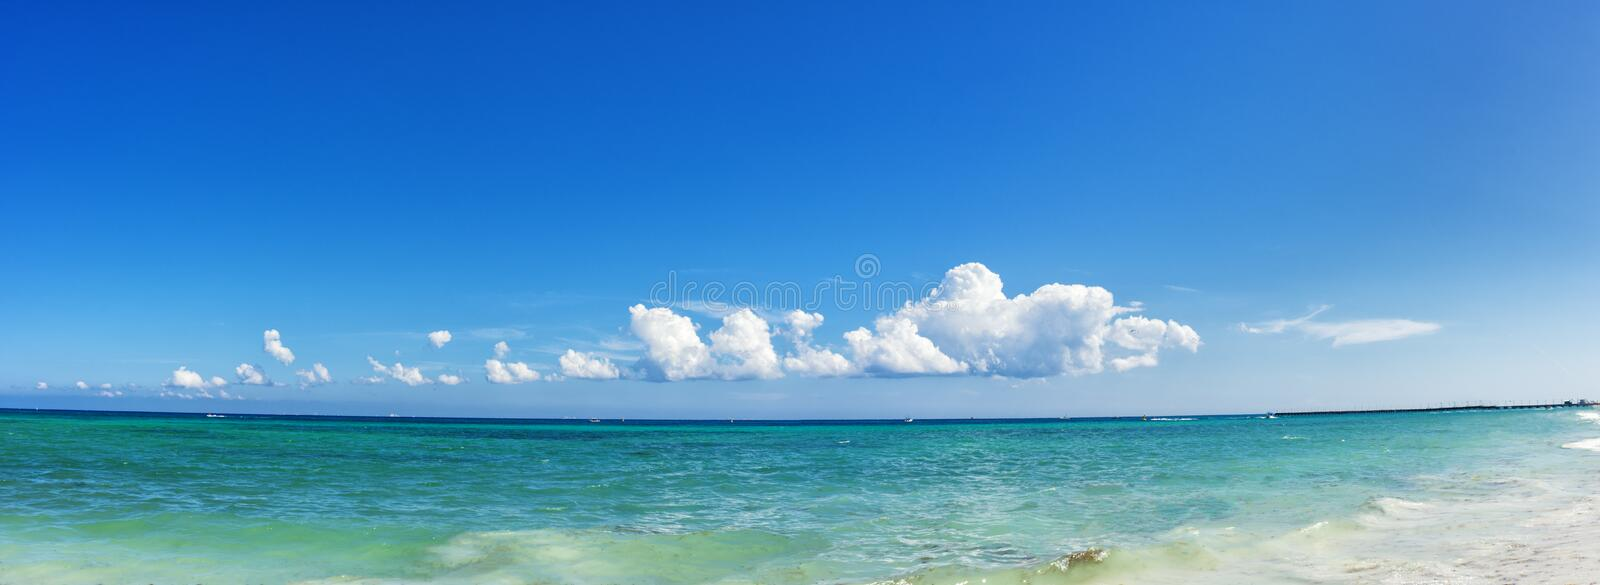 Turquoise beach at Playa del Carmen, Mexico. stock images